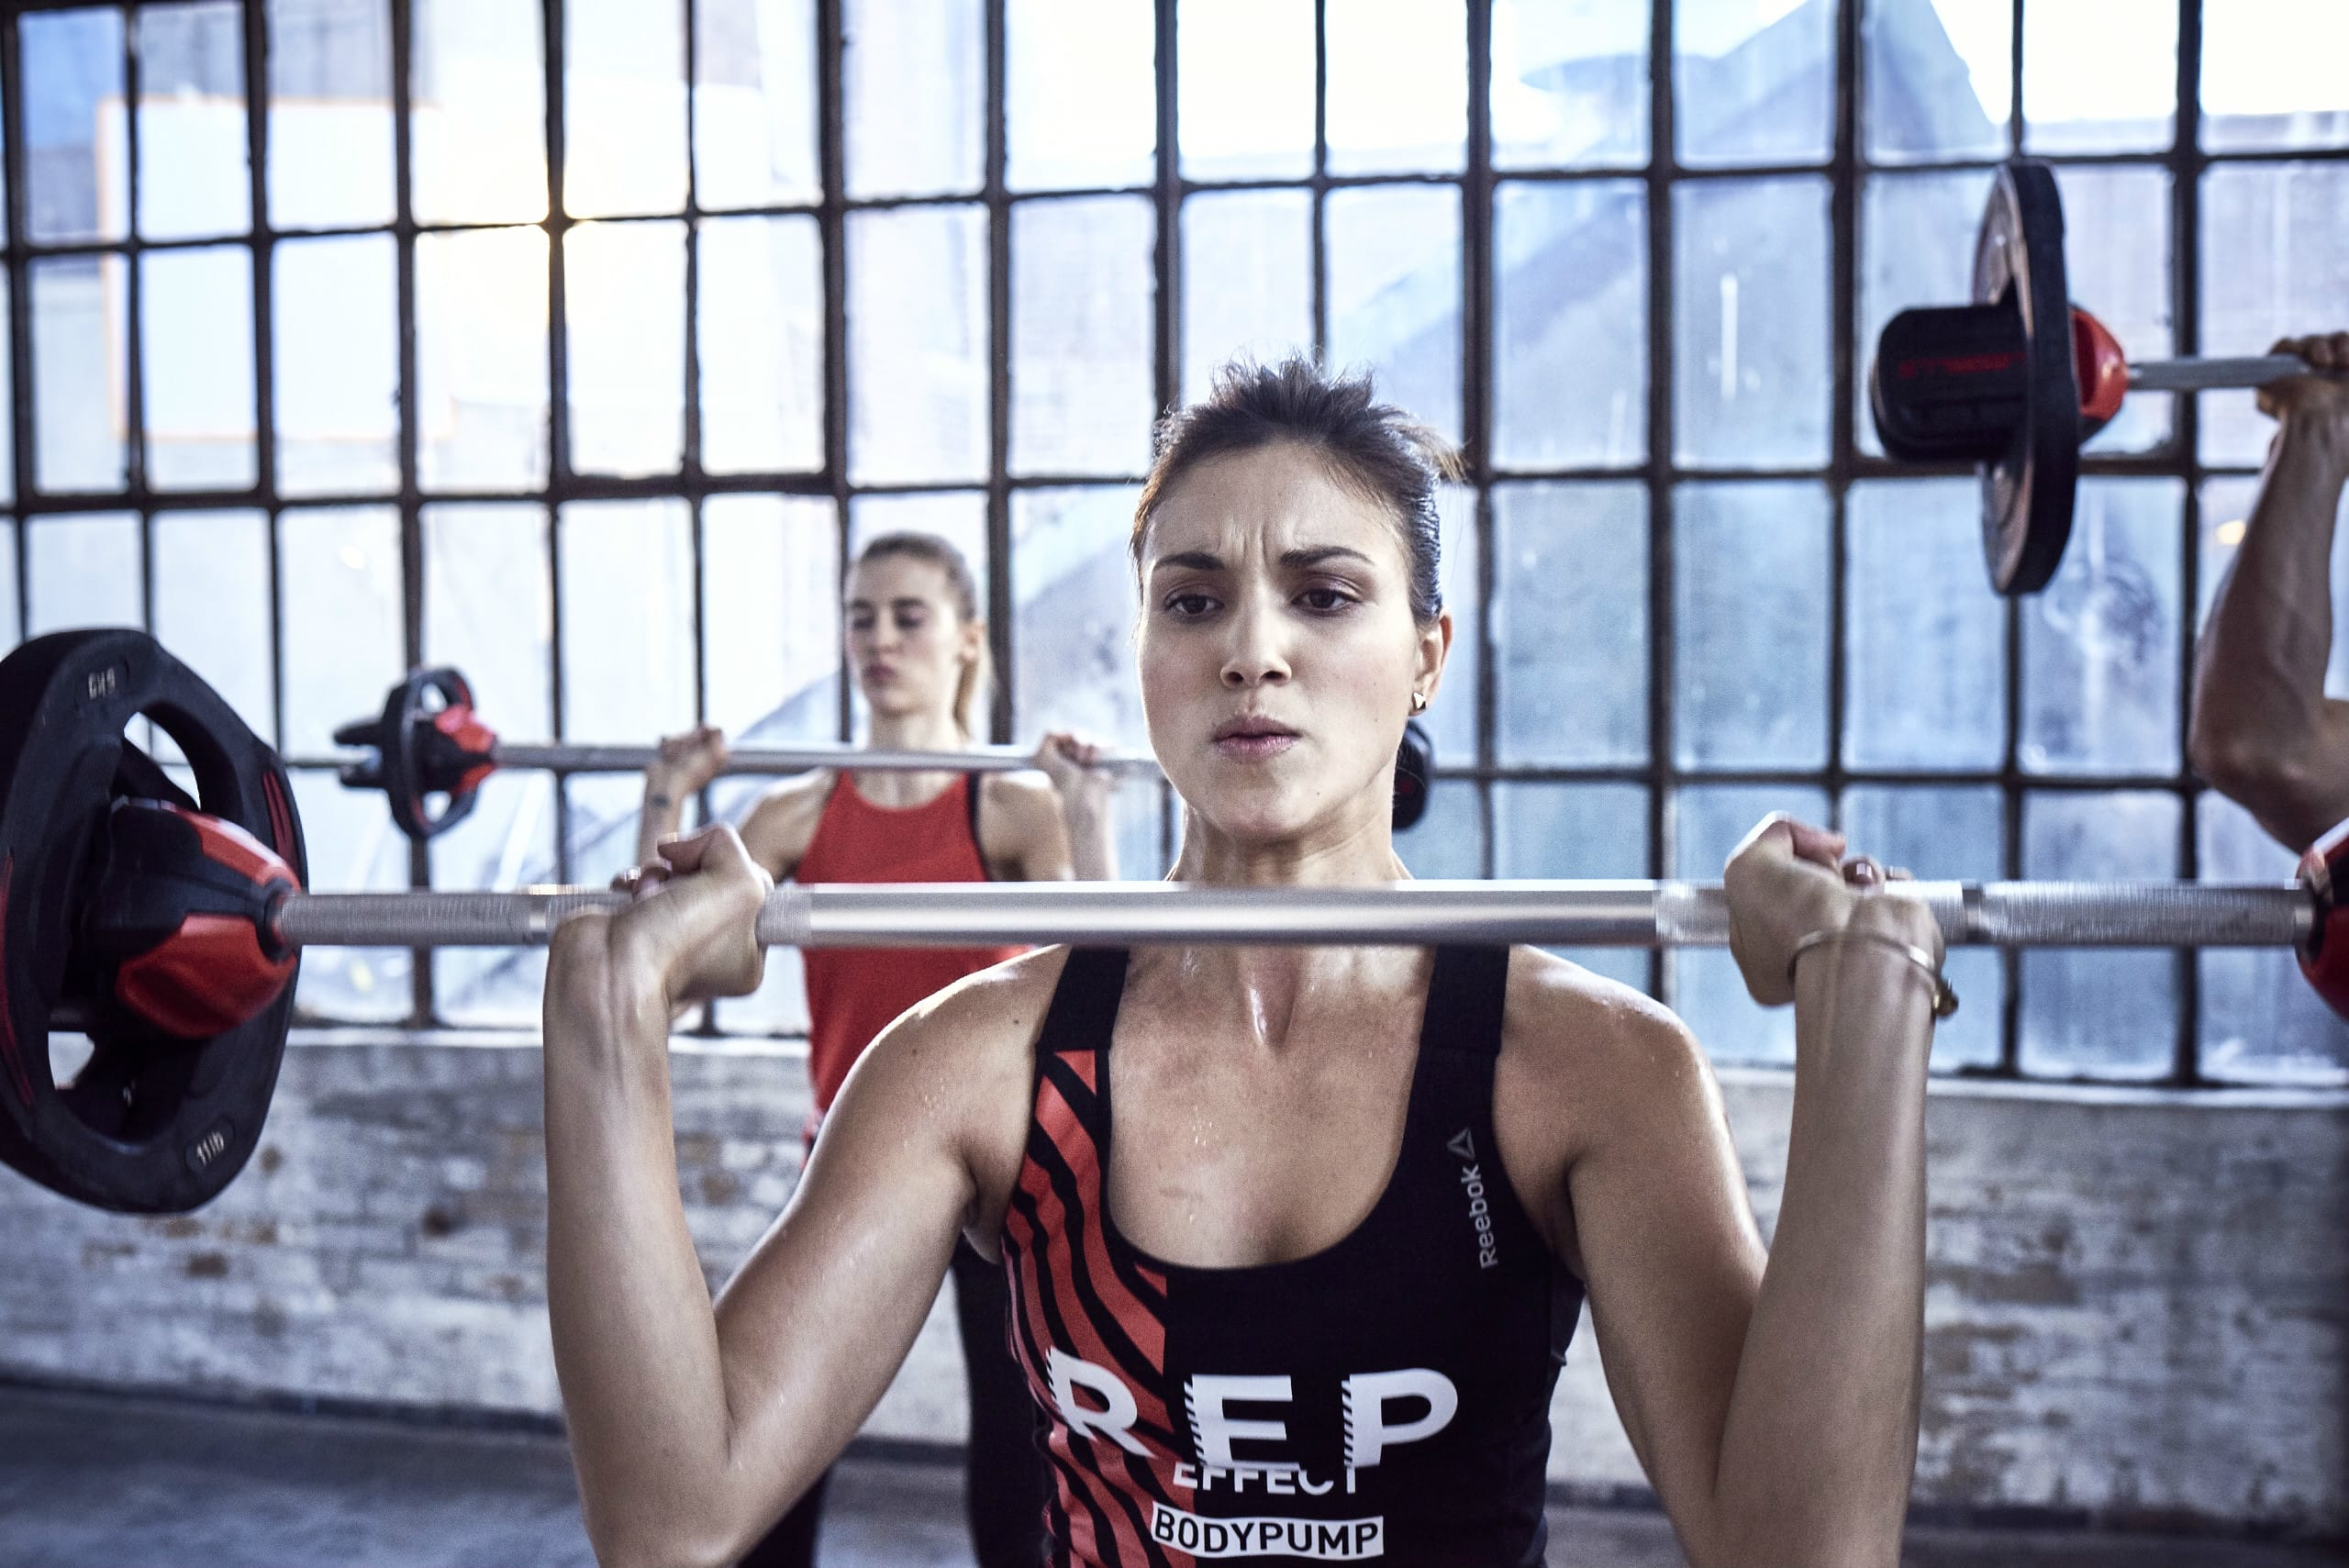 BODYPUMP: Not Your Average Workout